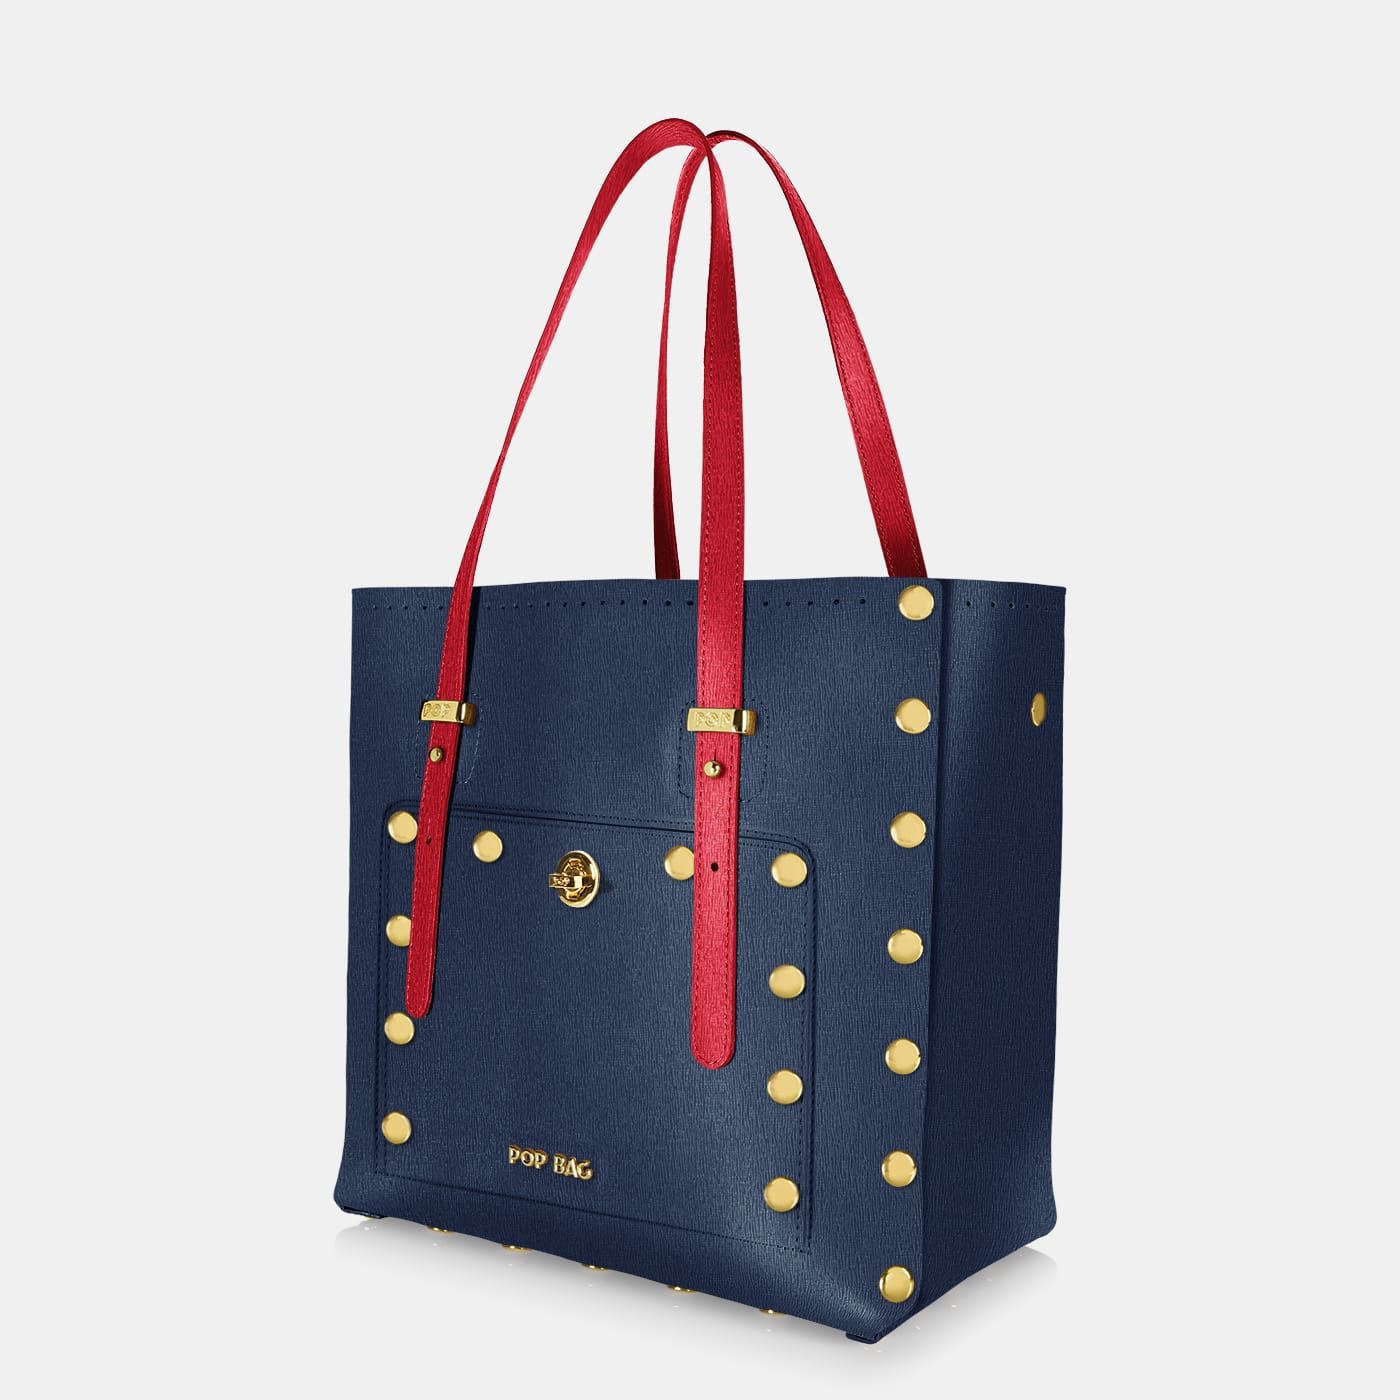 Pop Sailor Bag - Dark Blue - Red - Medium - Side View